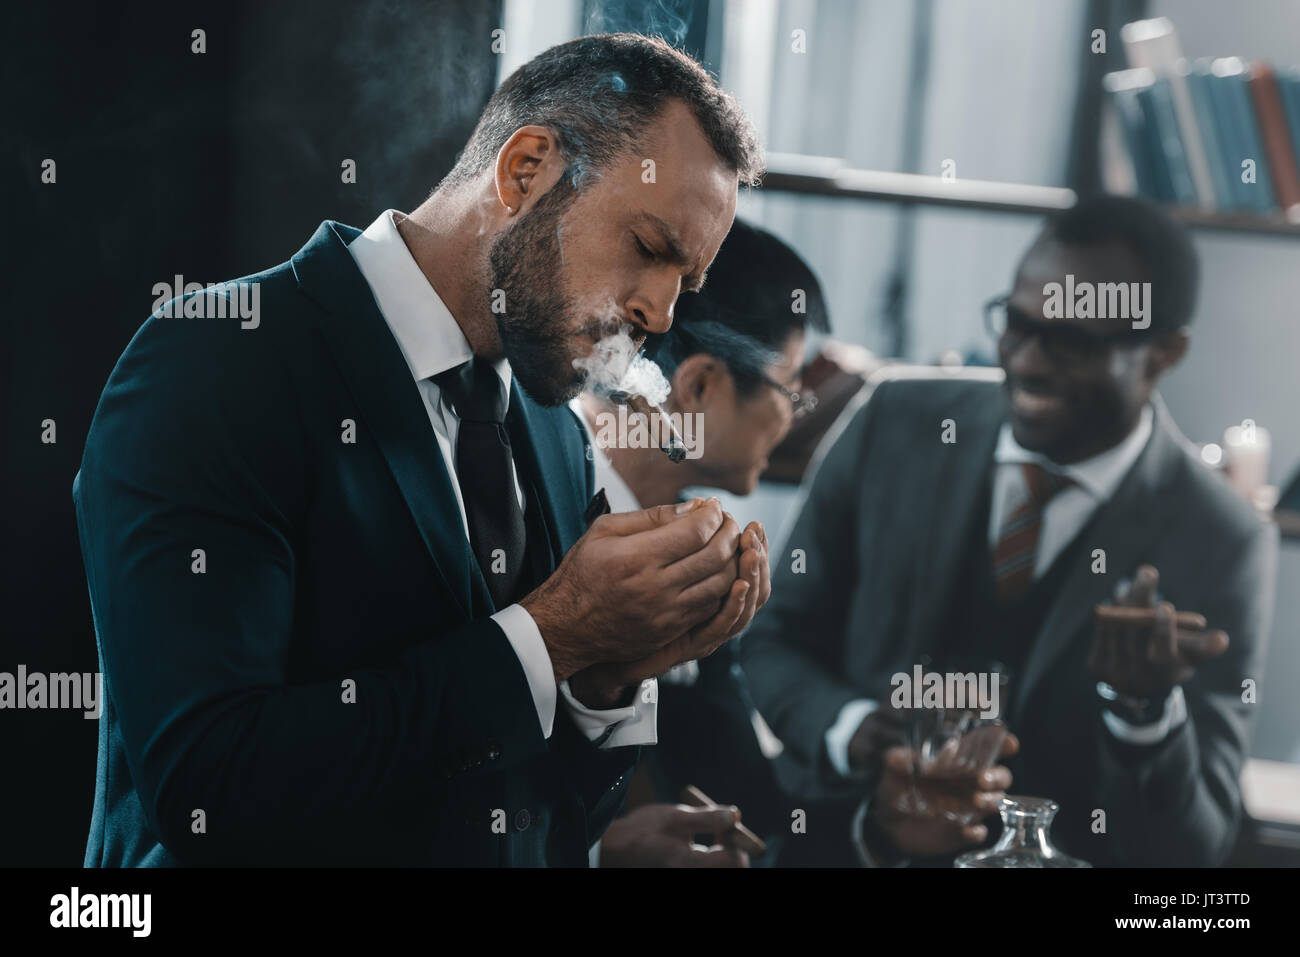 Asian Man Smoking Cigar Stock Photos & Asian Man Smoking